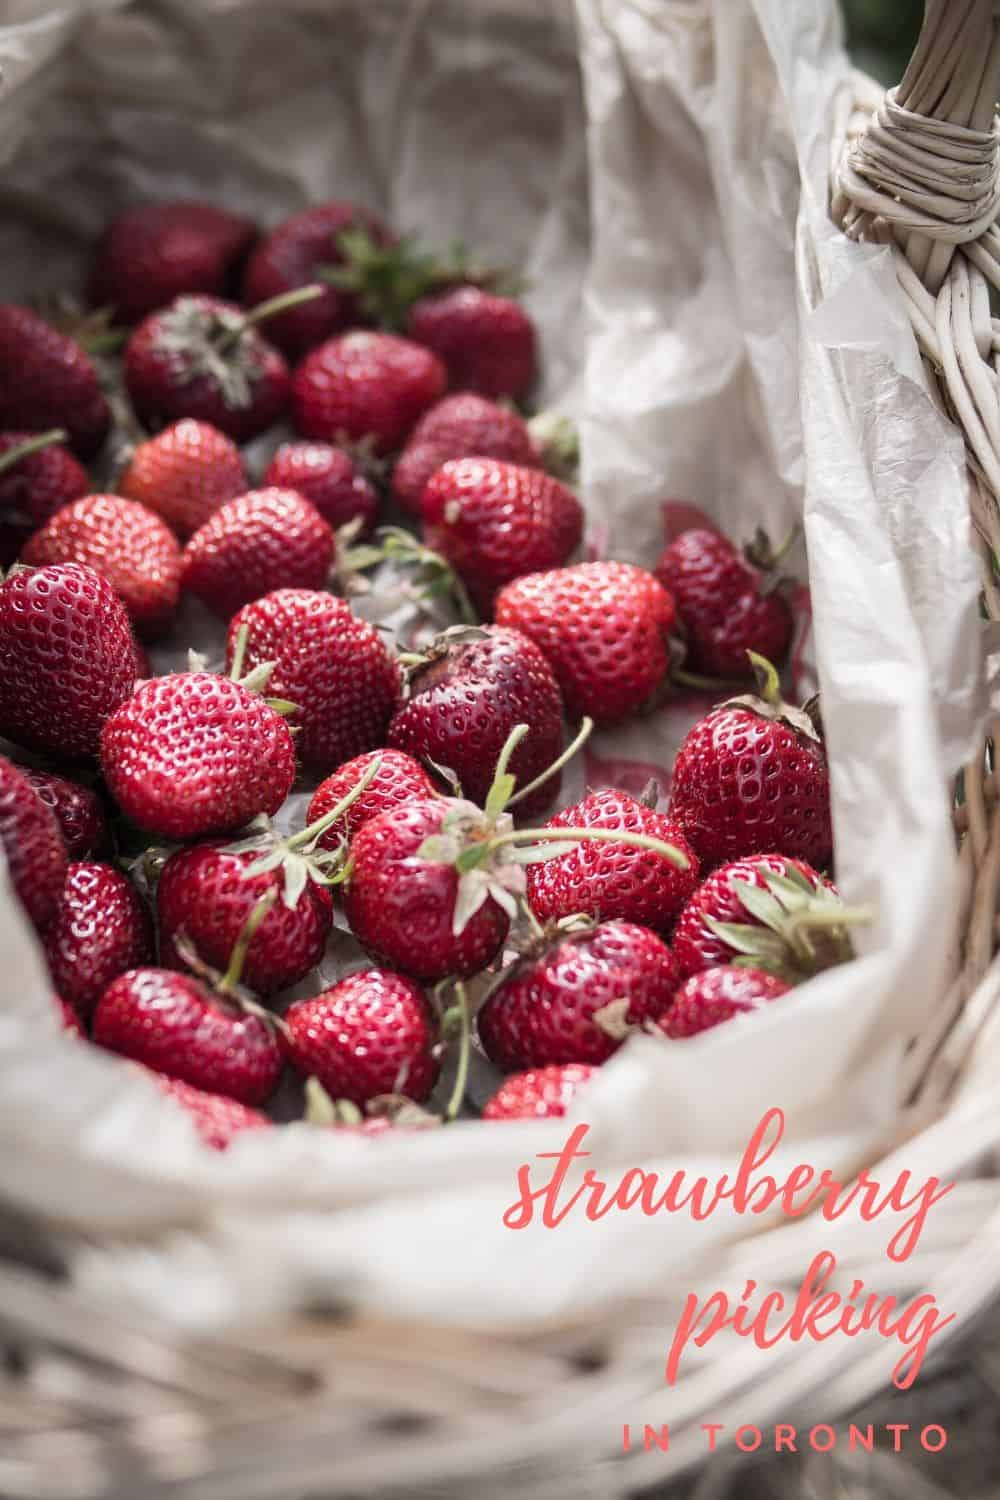 Strawberry Picking in Toronto - The perfect weekend activity in the summer